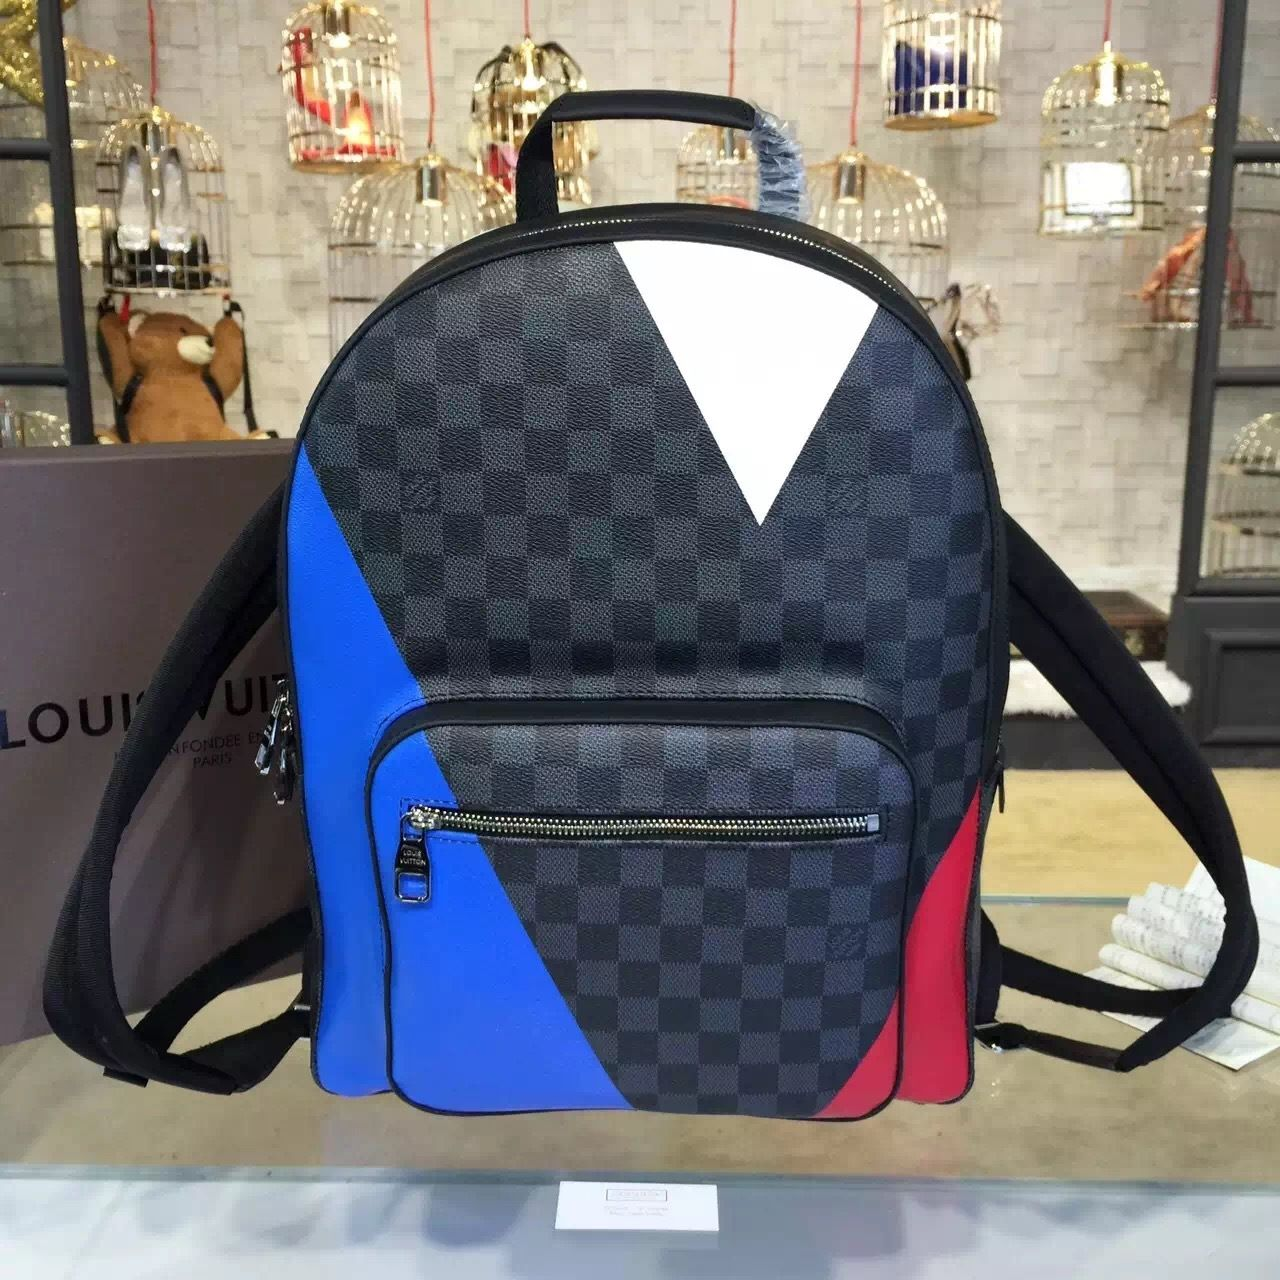 8f925f96da94 Louis Vuitton Josh Americas Cup Backpack Damier Ebene Canvas Macassar  Fall Winter 2016 Collection M41530 - My Luxe Fashions